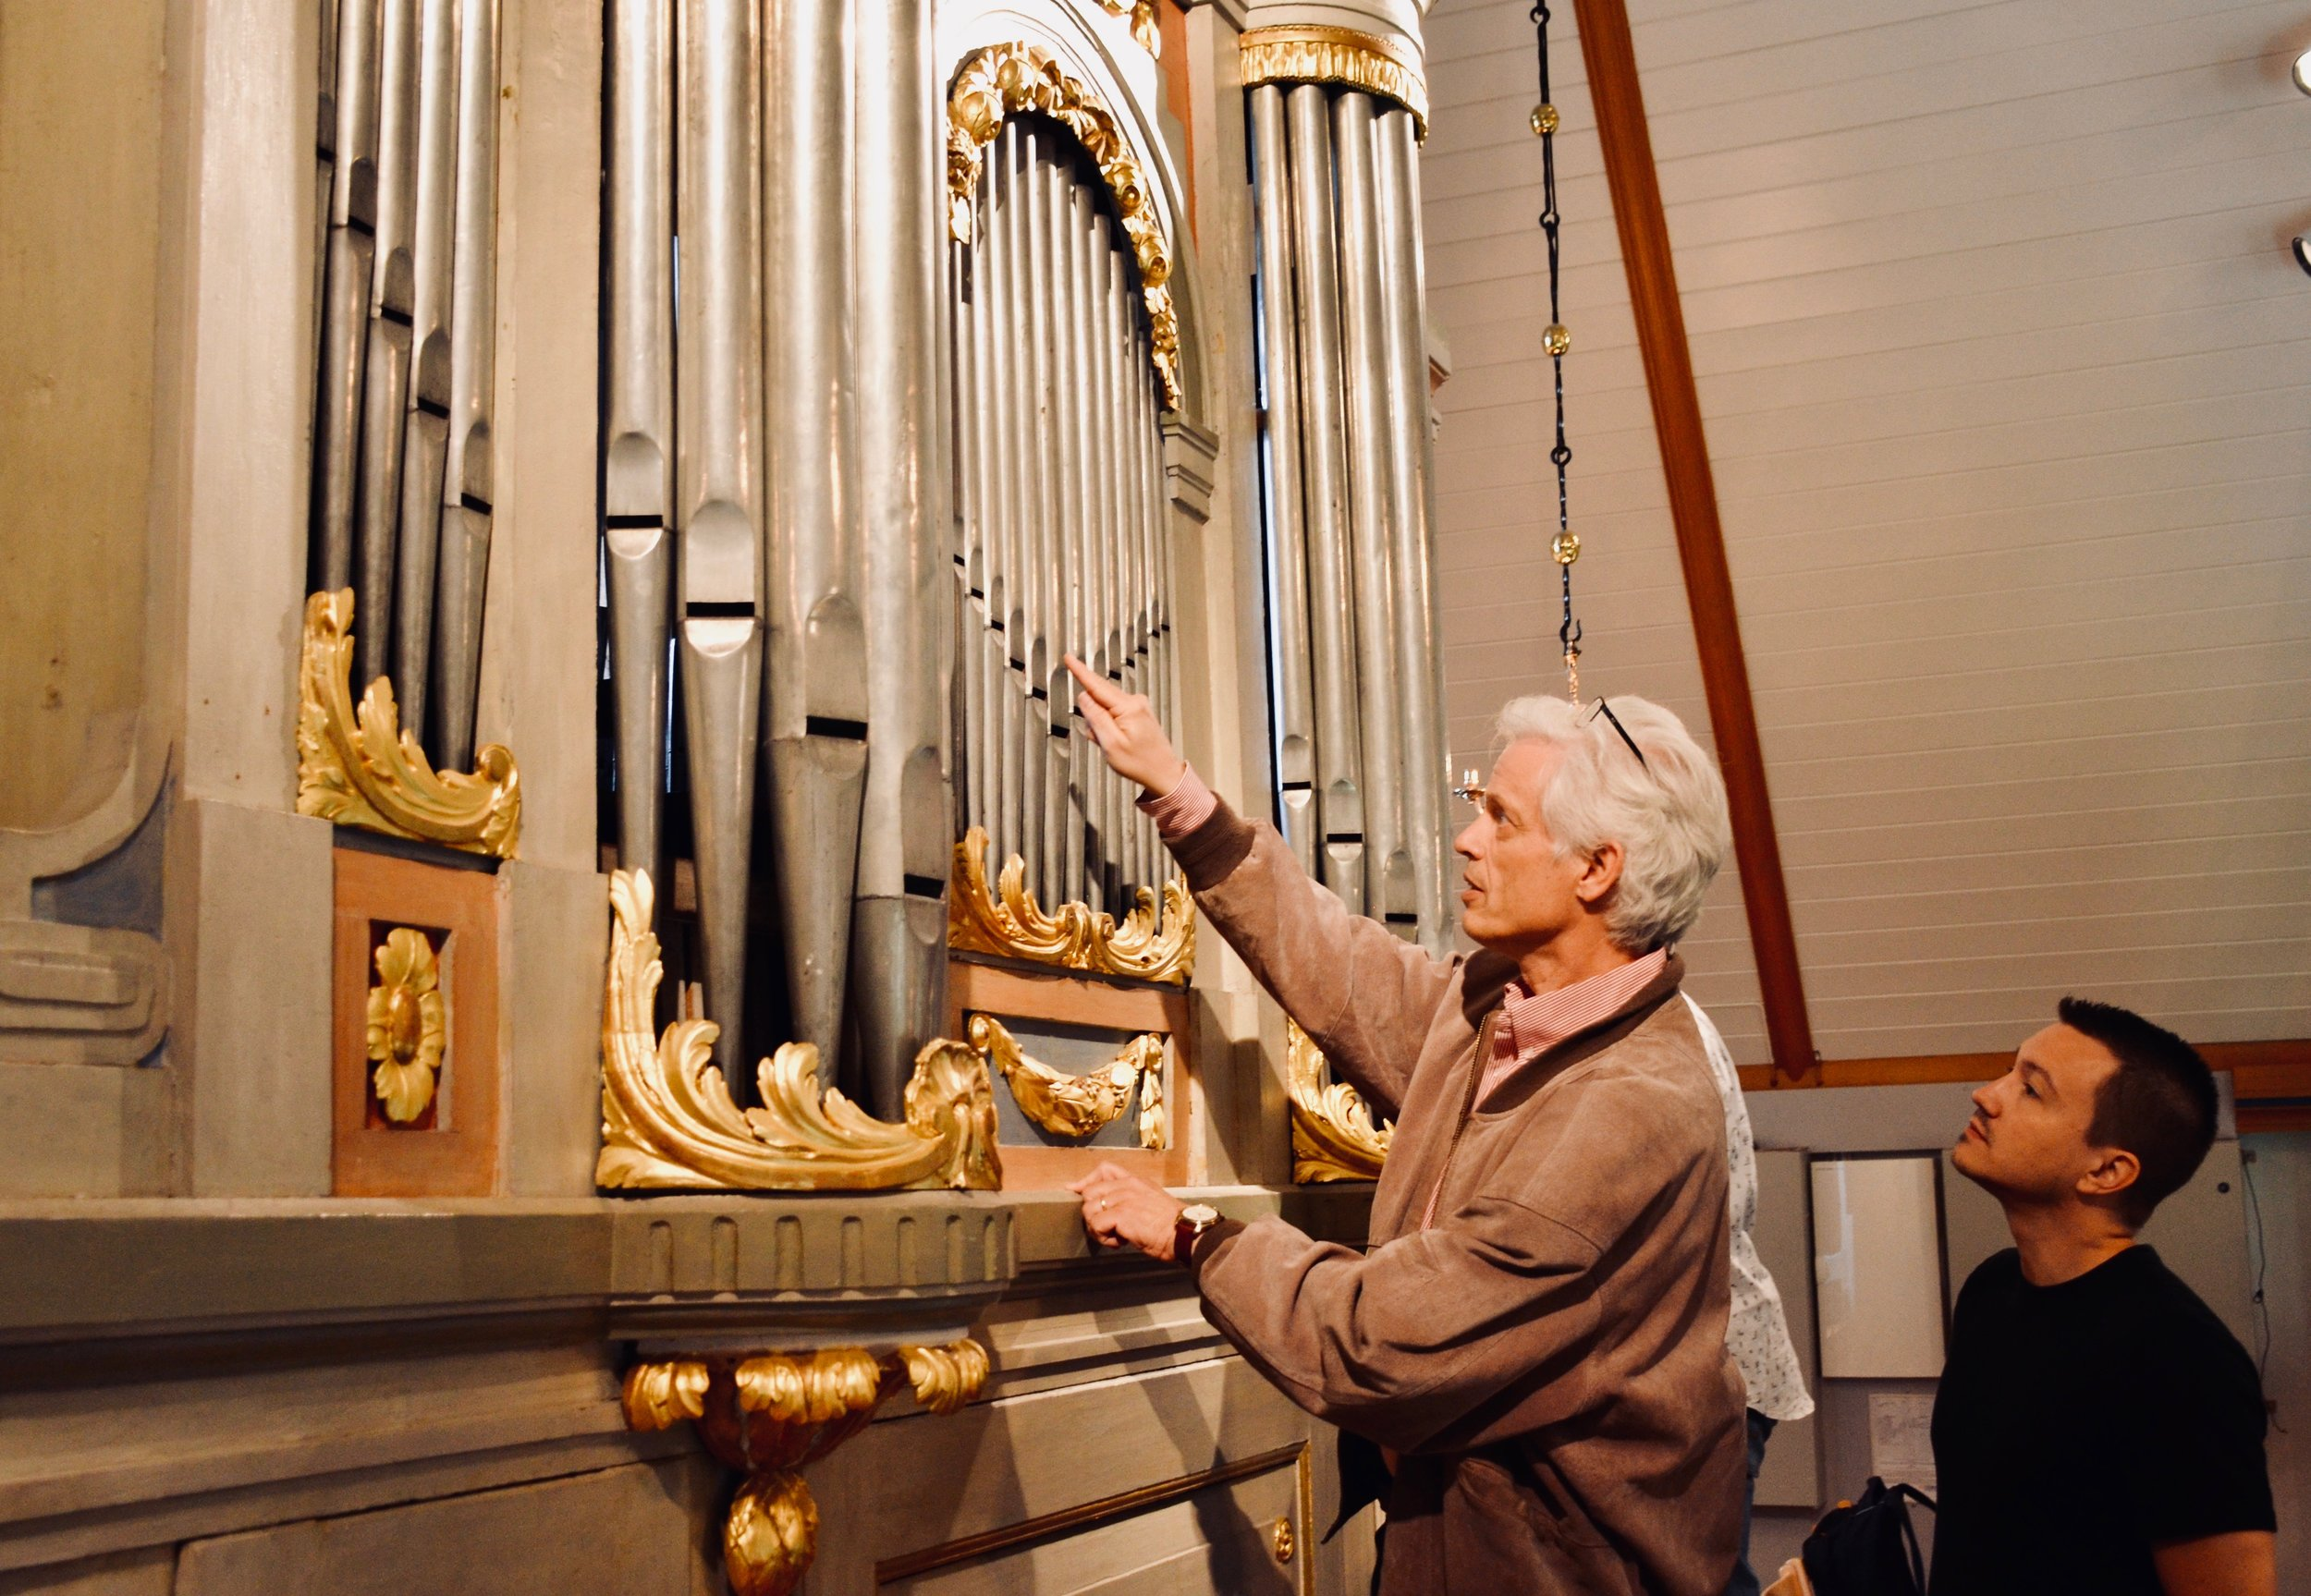 Hans Davidsson points out features of the 1783 Schiörlin organ in Jonsered, Sweden.